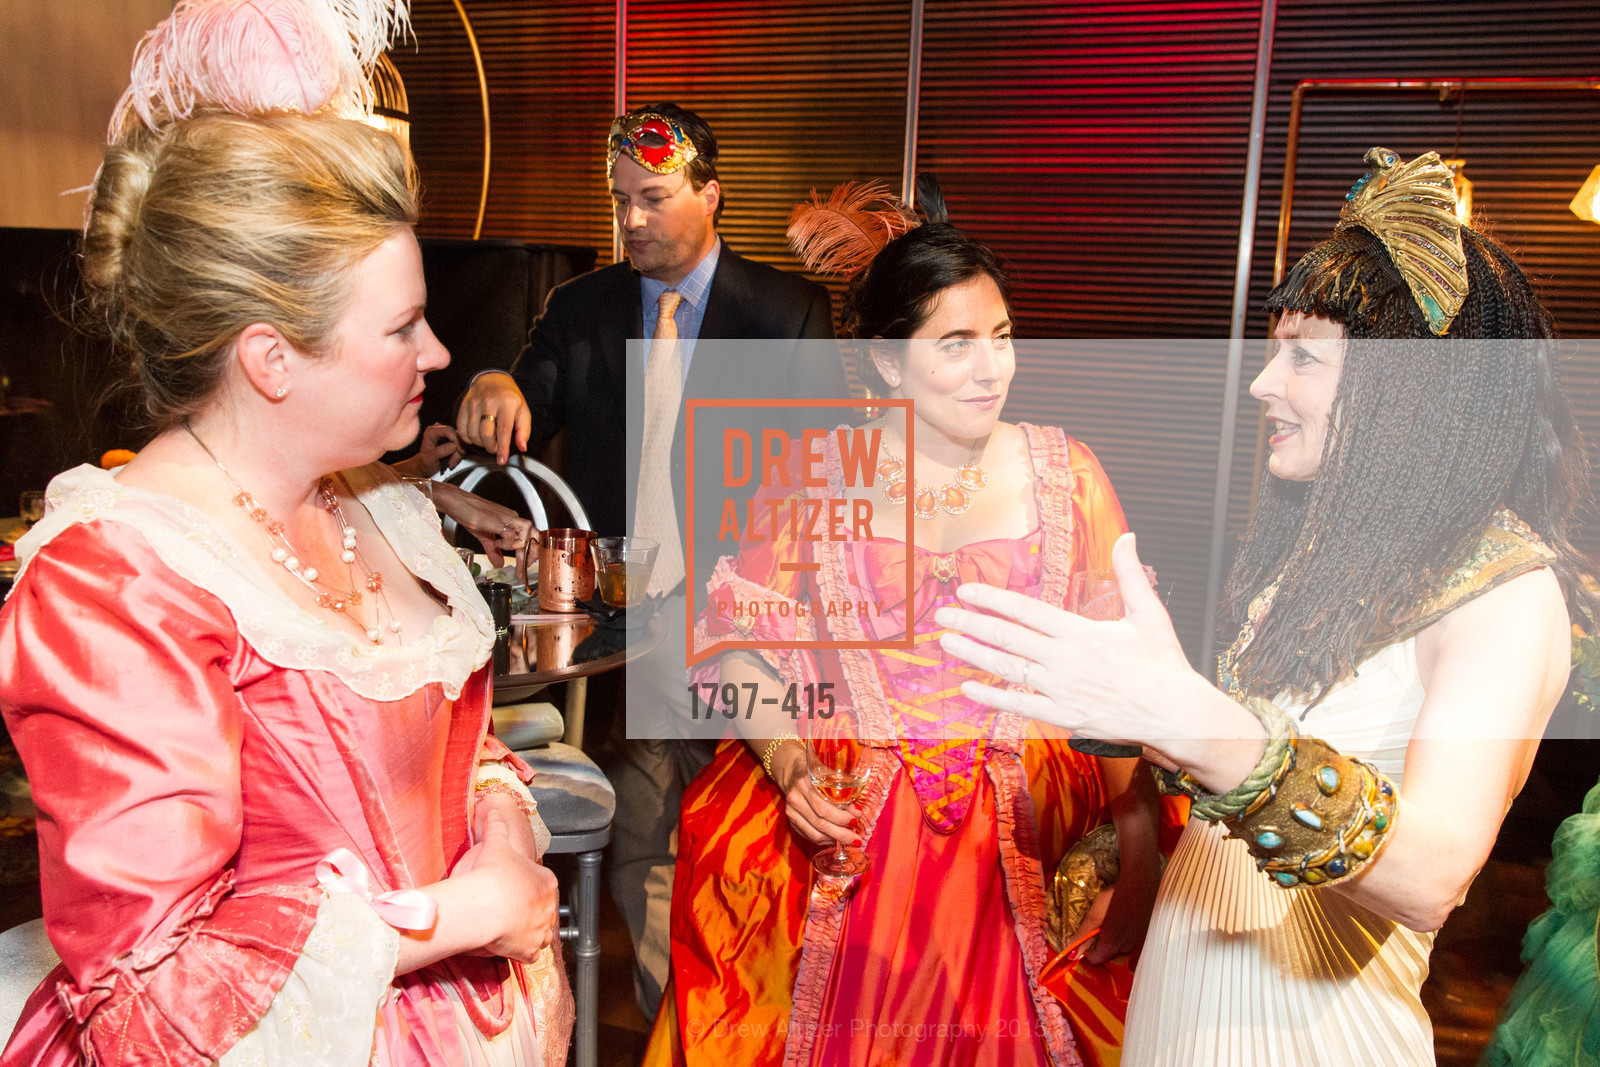 Christine Huhn, Melissa Smith, Diana Tauder, SPOOKED AT THE STRAND Presented by the American Conservatory Theater, The Strand Theater. 1127 Market Street, October 26th, 2015,Drew Altizer, Drew Altizer Photography, full-service event agency, private events, San Francisco photographer, photographer California